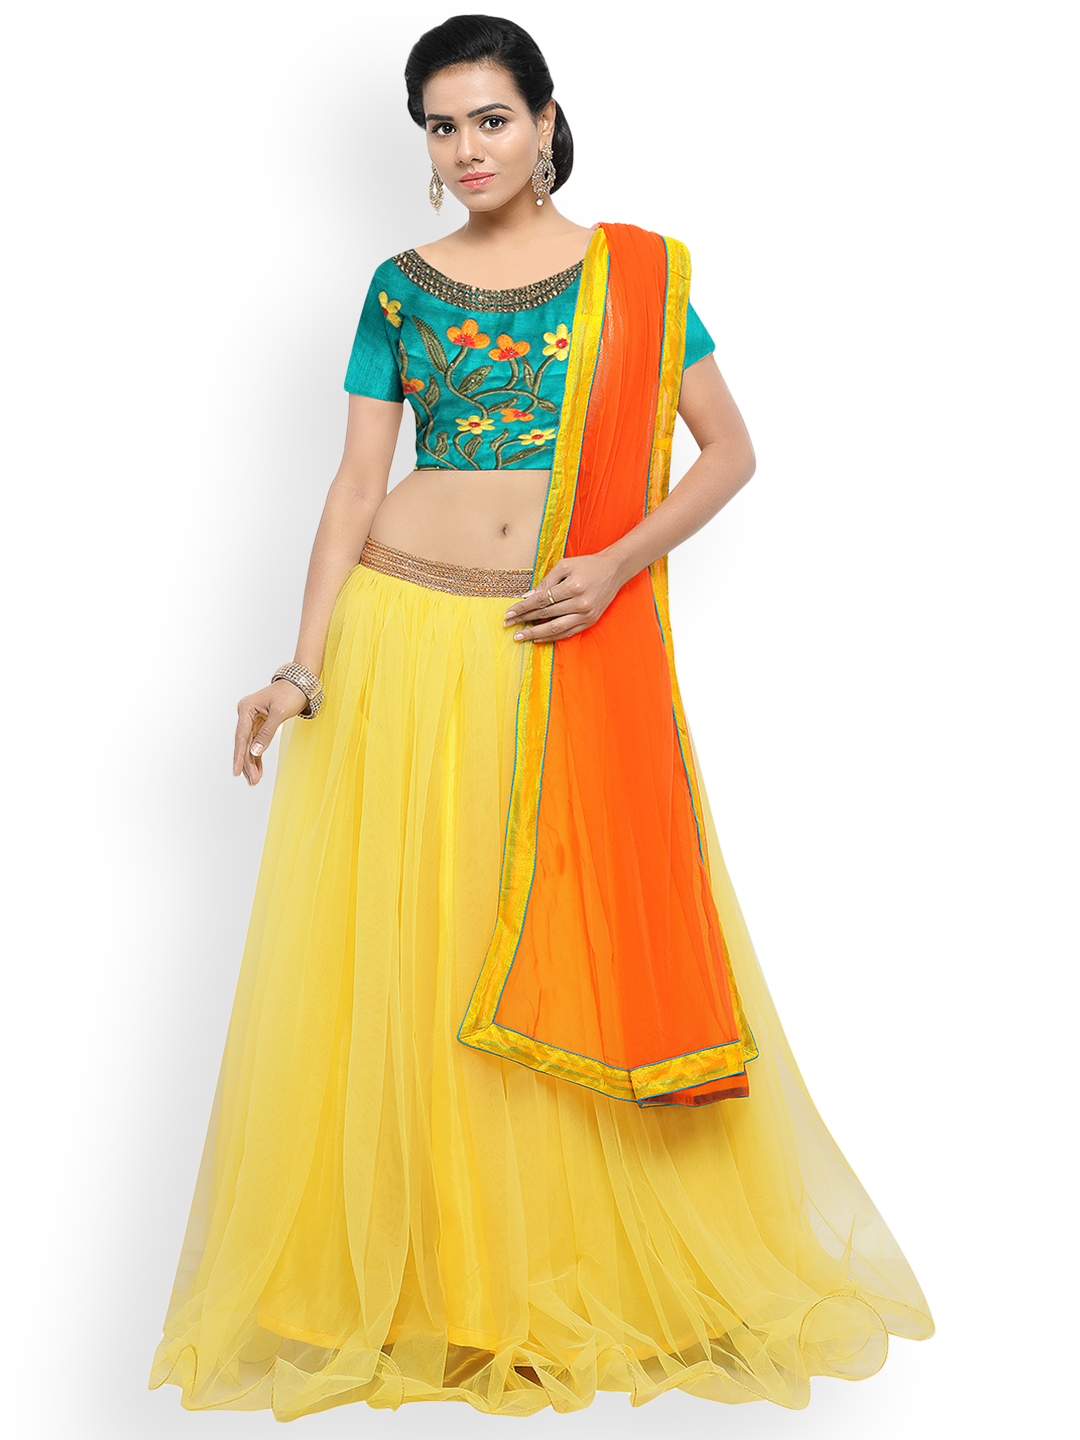 Styles Closet Yellow & Teal Embroidered Semi-Stitched Lehenga & Unstitched Blouse with Dupatta Price in India